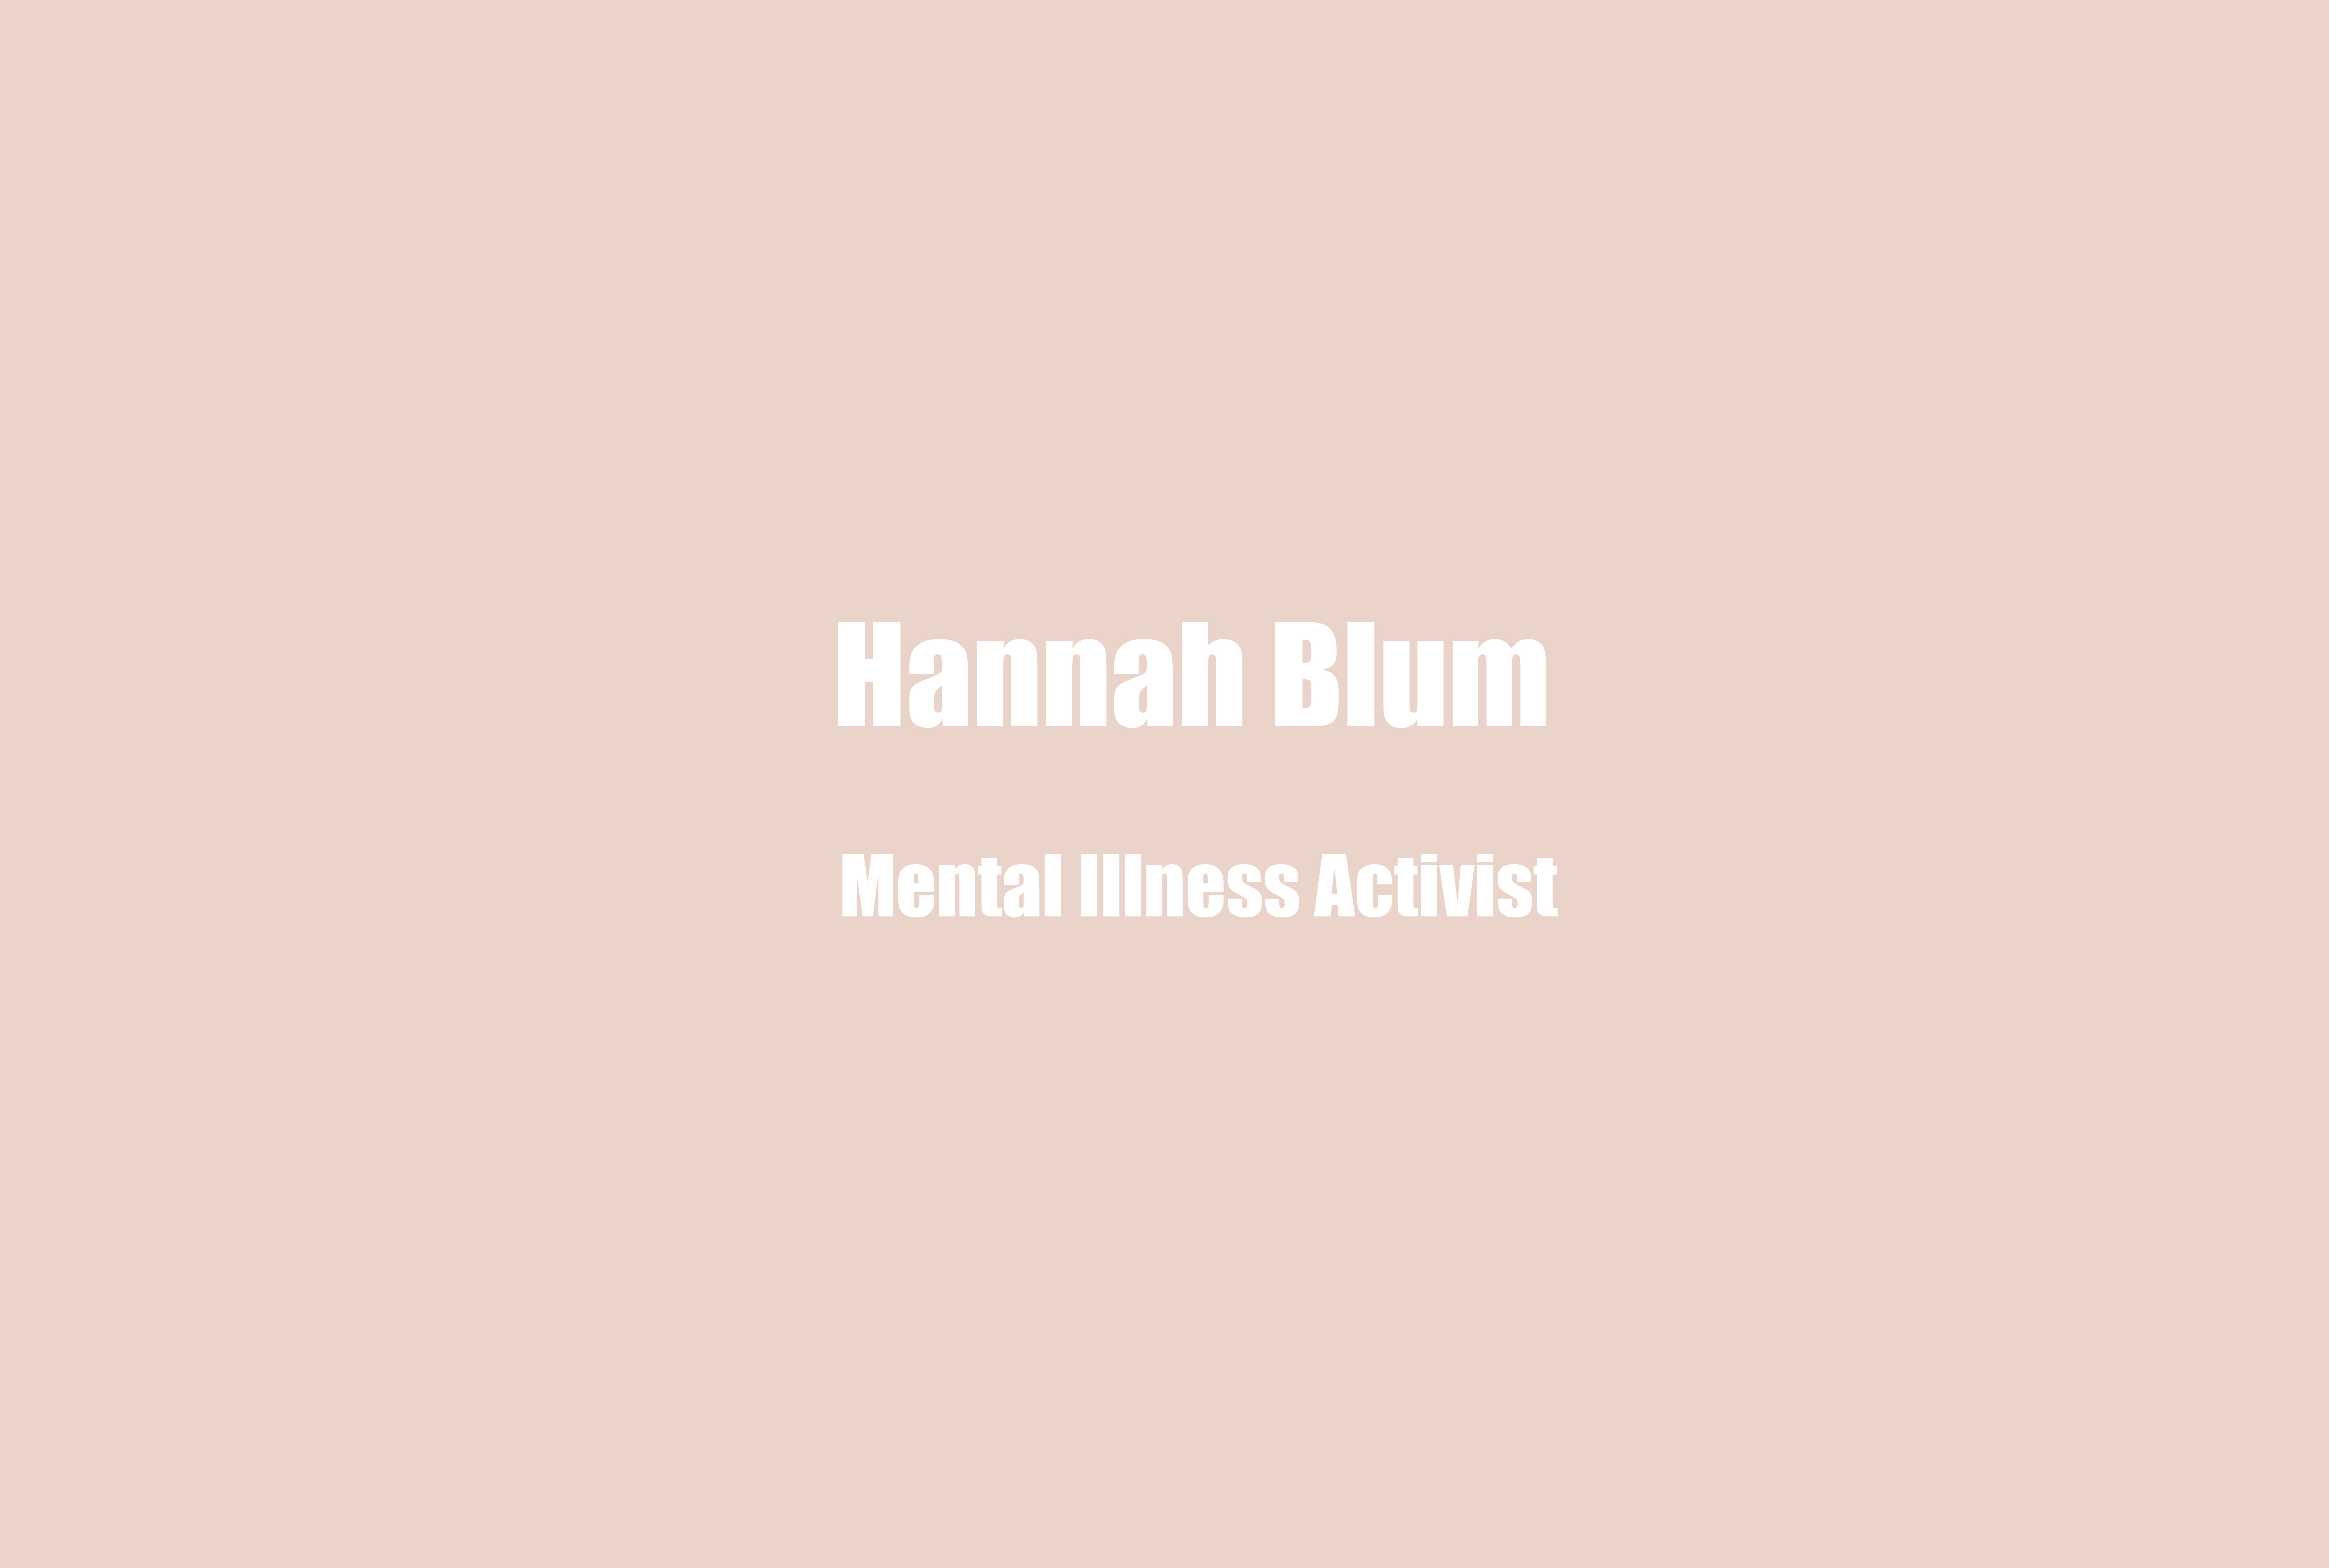 """Hannah Blum, Activist, Author, & Instagram Influencer on Mental Health Stigma, Deleterious Effects Of the """"Wellness Movement"""" and Navigating Relationships with Mental Illness"""